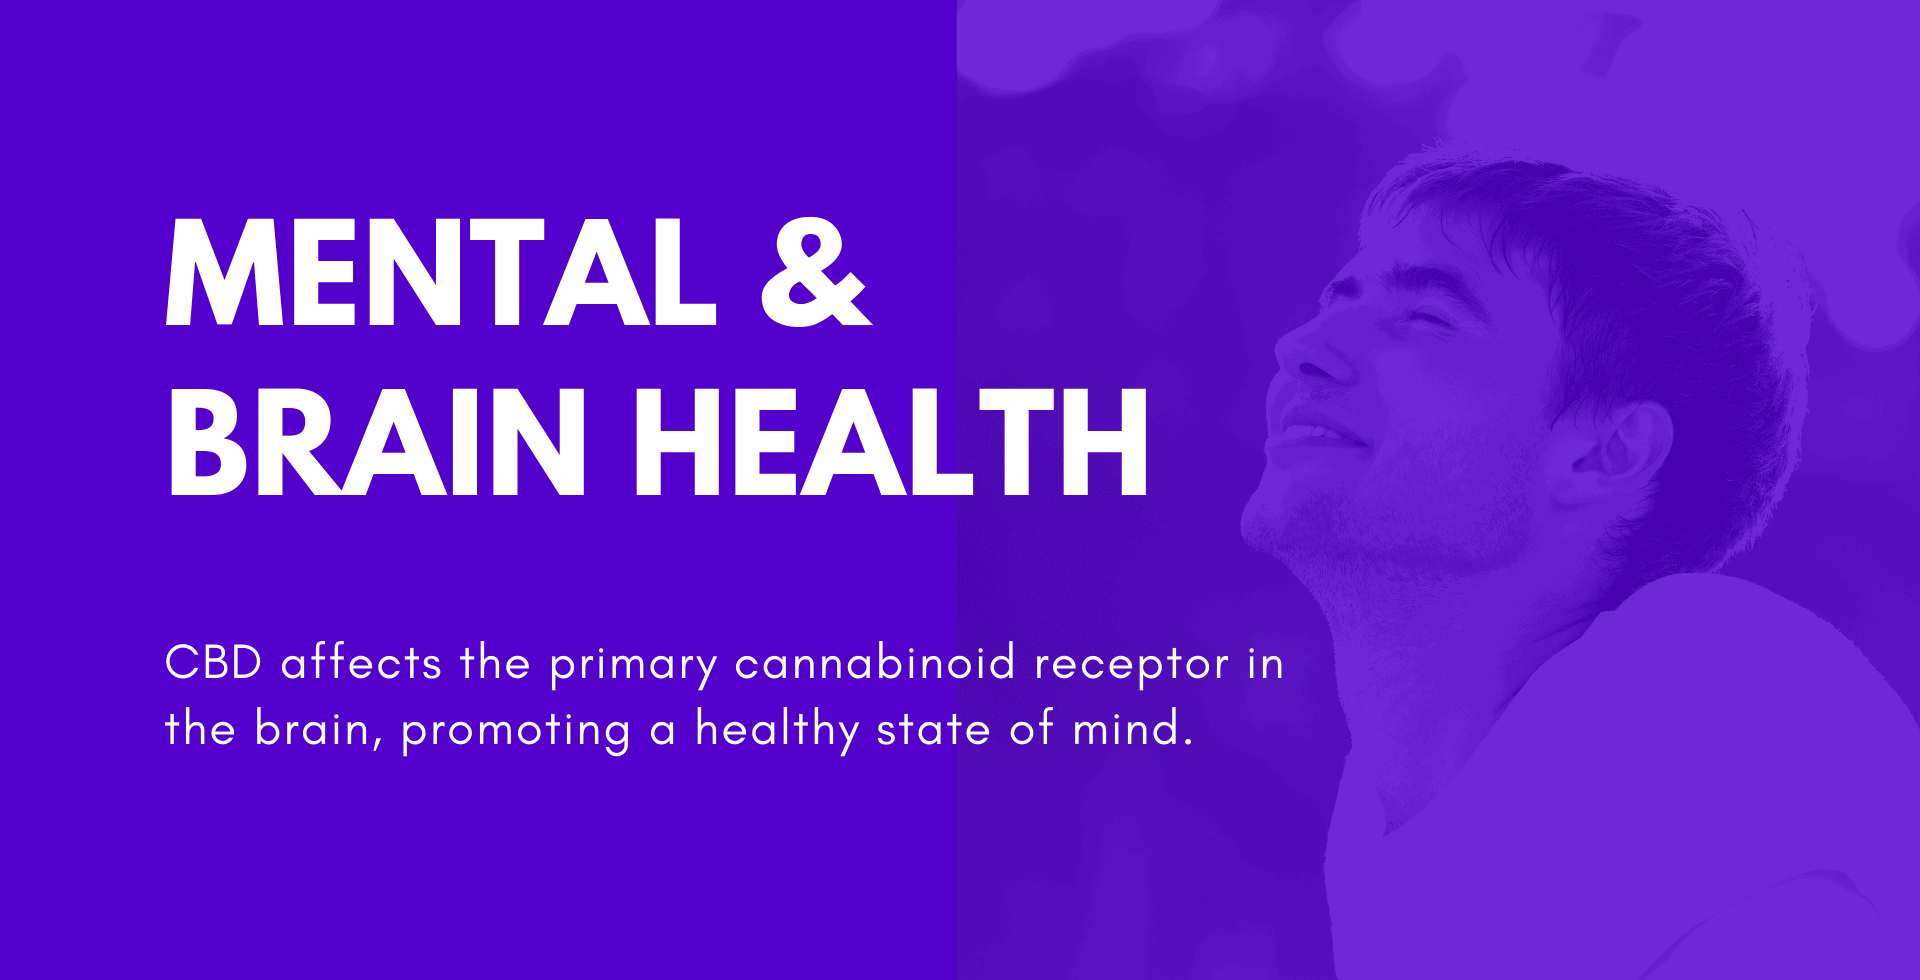 CBD Benefits - Mental Health